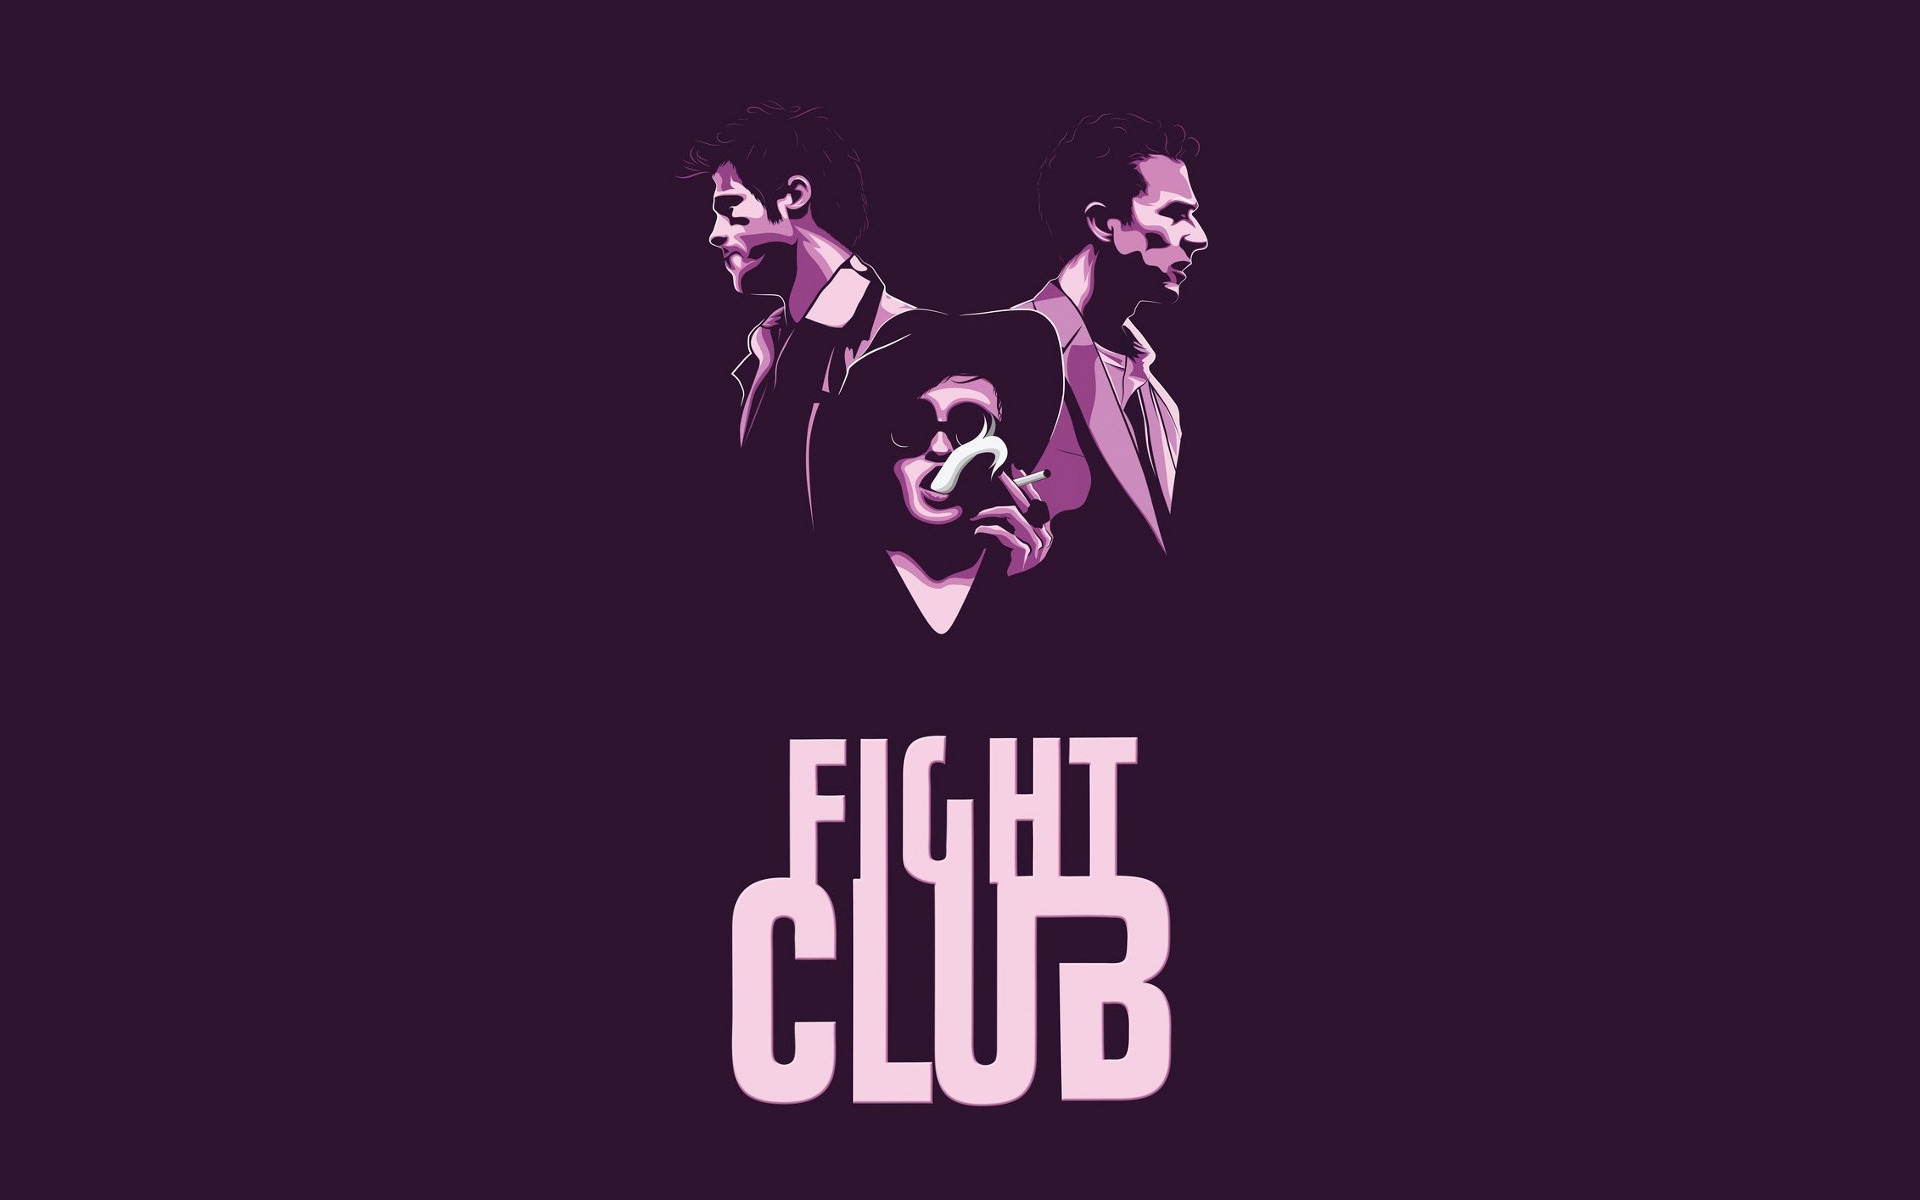 Breaking Bad Wallpaper Quotes Fight Club Movie Backgrounds Download Free Pixelstalk Net